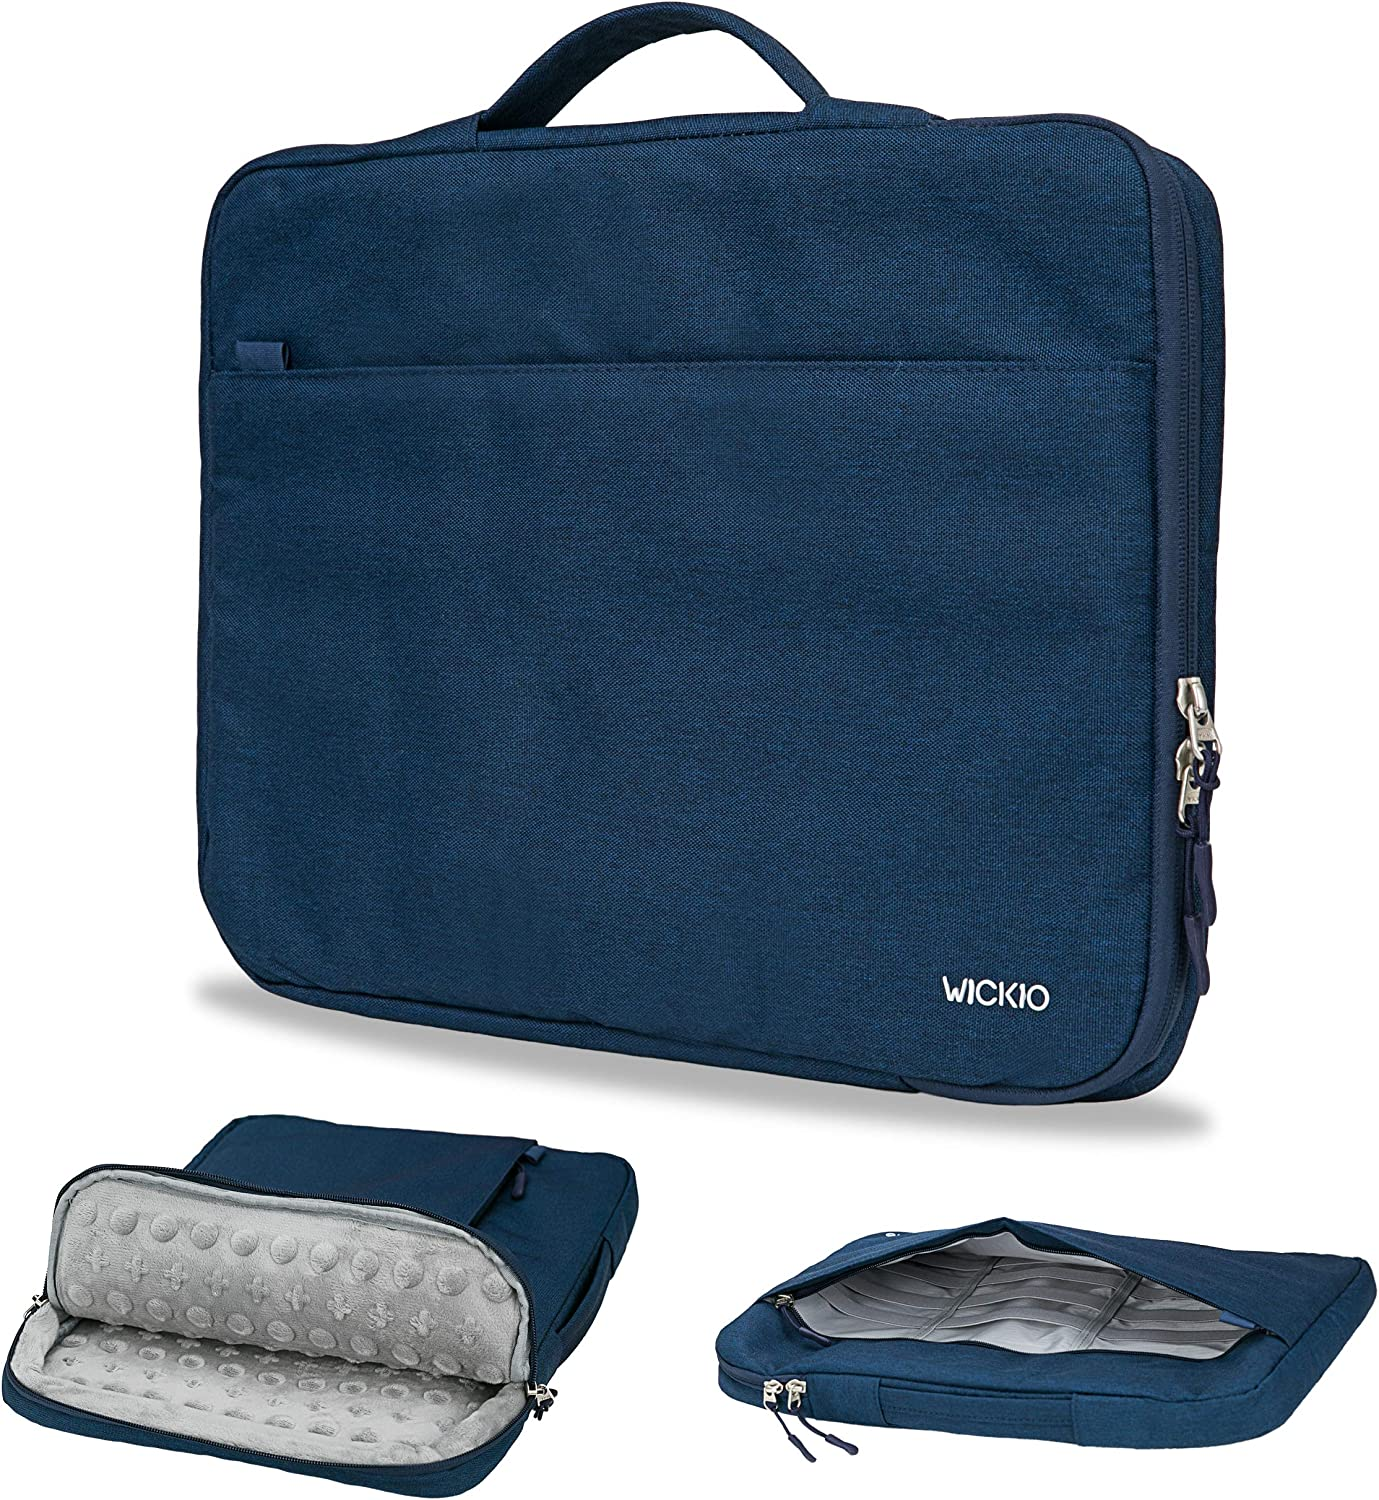 WICKIO Protective Laptop Sleeve Case Bag Briefcase Pouch Notebook Tablet Cover 13 15 17 inch 12.9 13.5 15.6 Compatible with Apple MacBook pro air Dell HP Lenovo Microsoft Acer Samsung Asus Chromebook